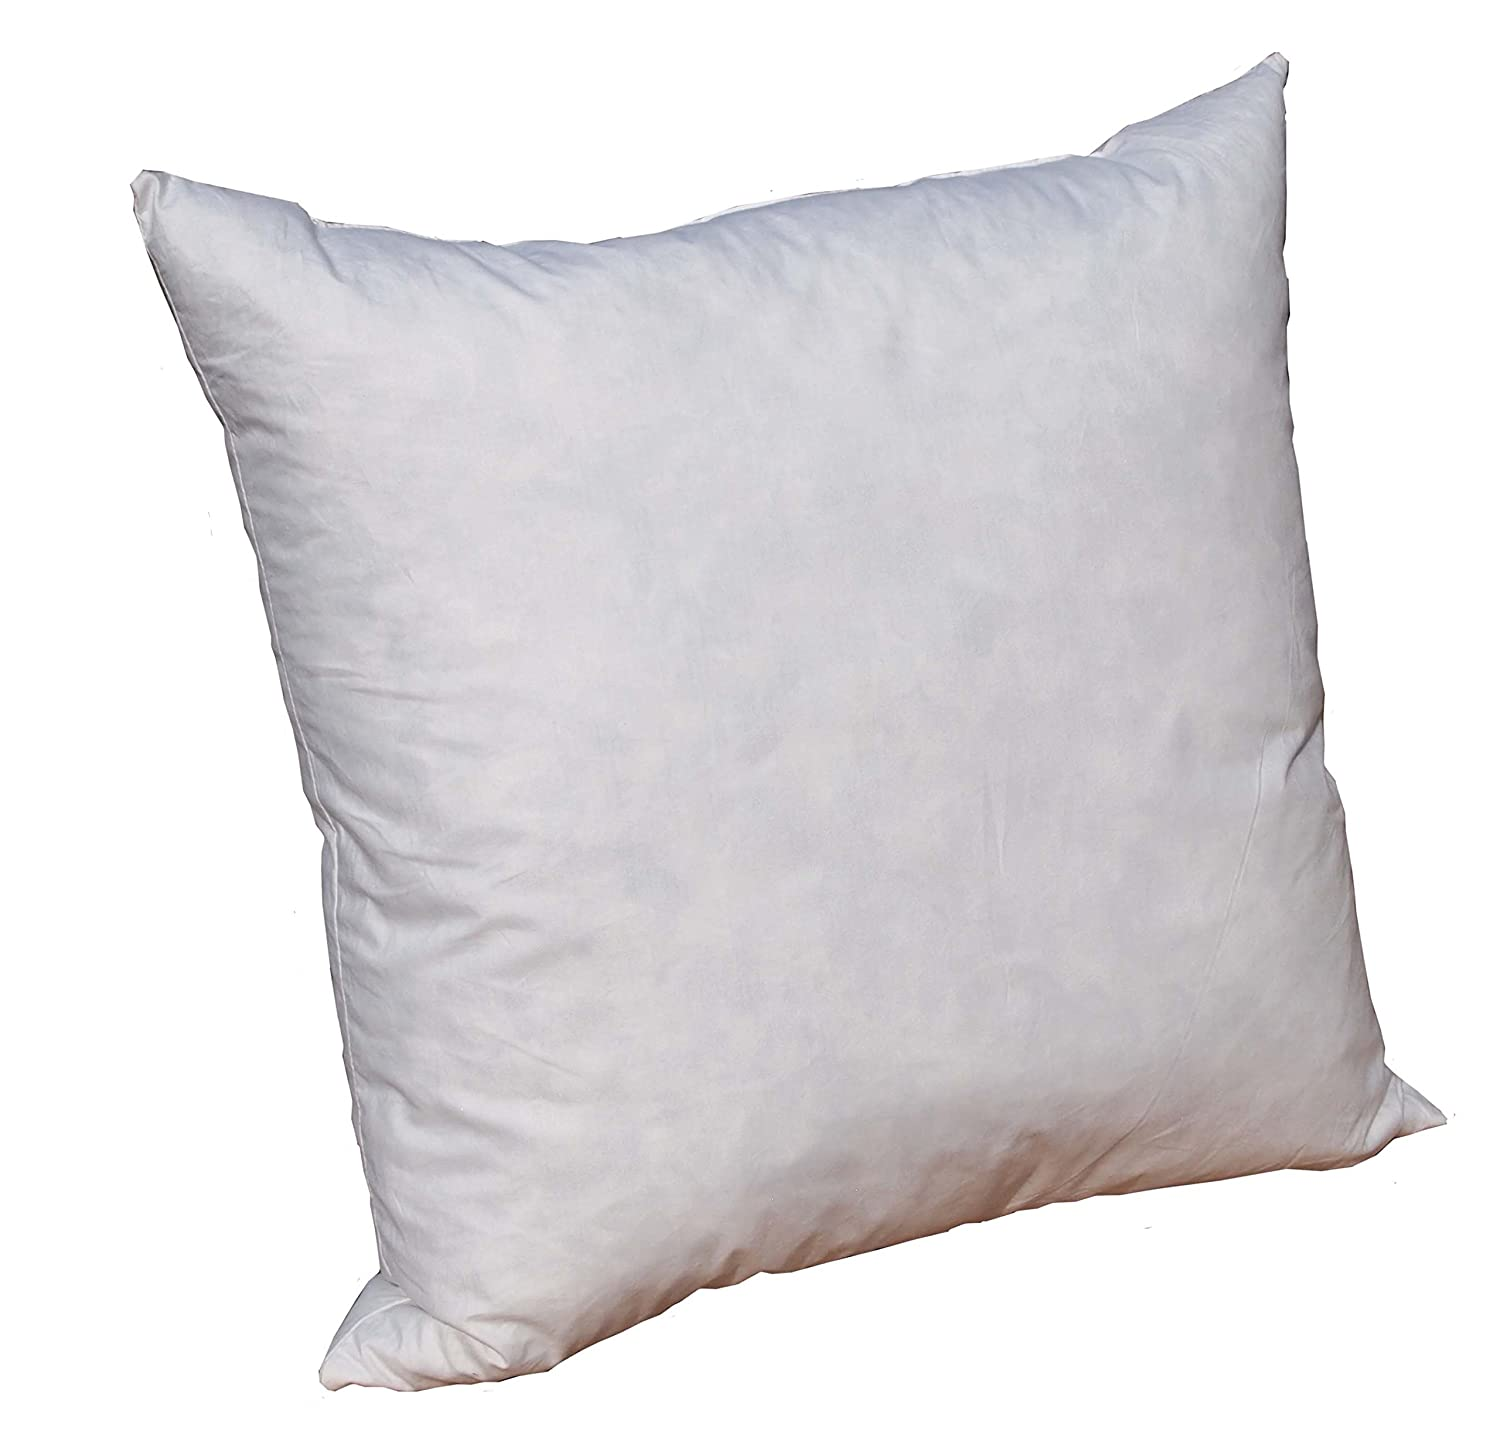 Amazon.com: Pillowflex 18% Feather by 18% Down Pillow Form Insert ...